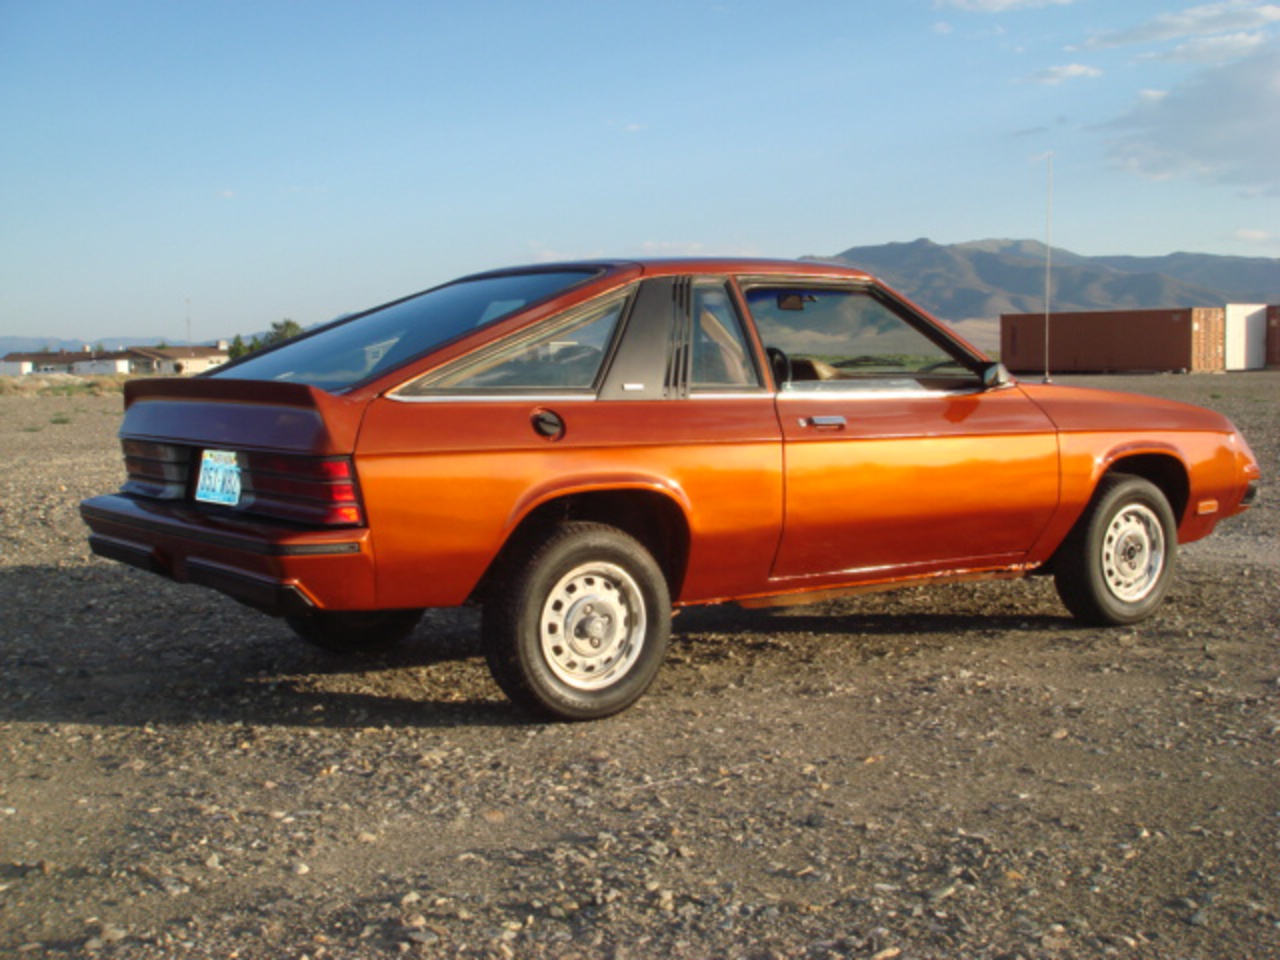 1981 Dodge Omni 024 - $1000.00 - Turbo Dodge Forums : Turbo Dodge Forum for